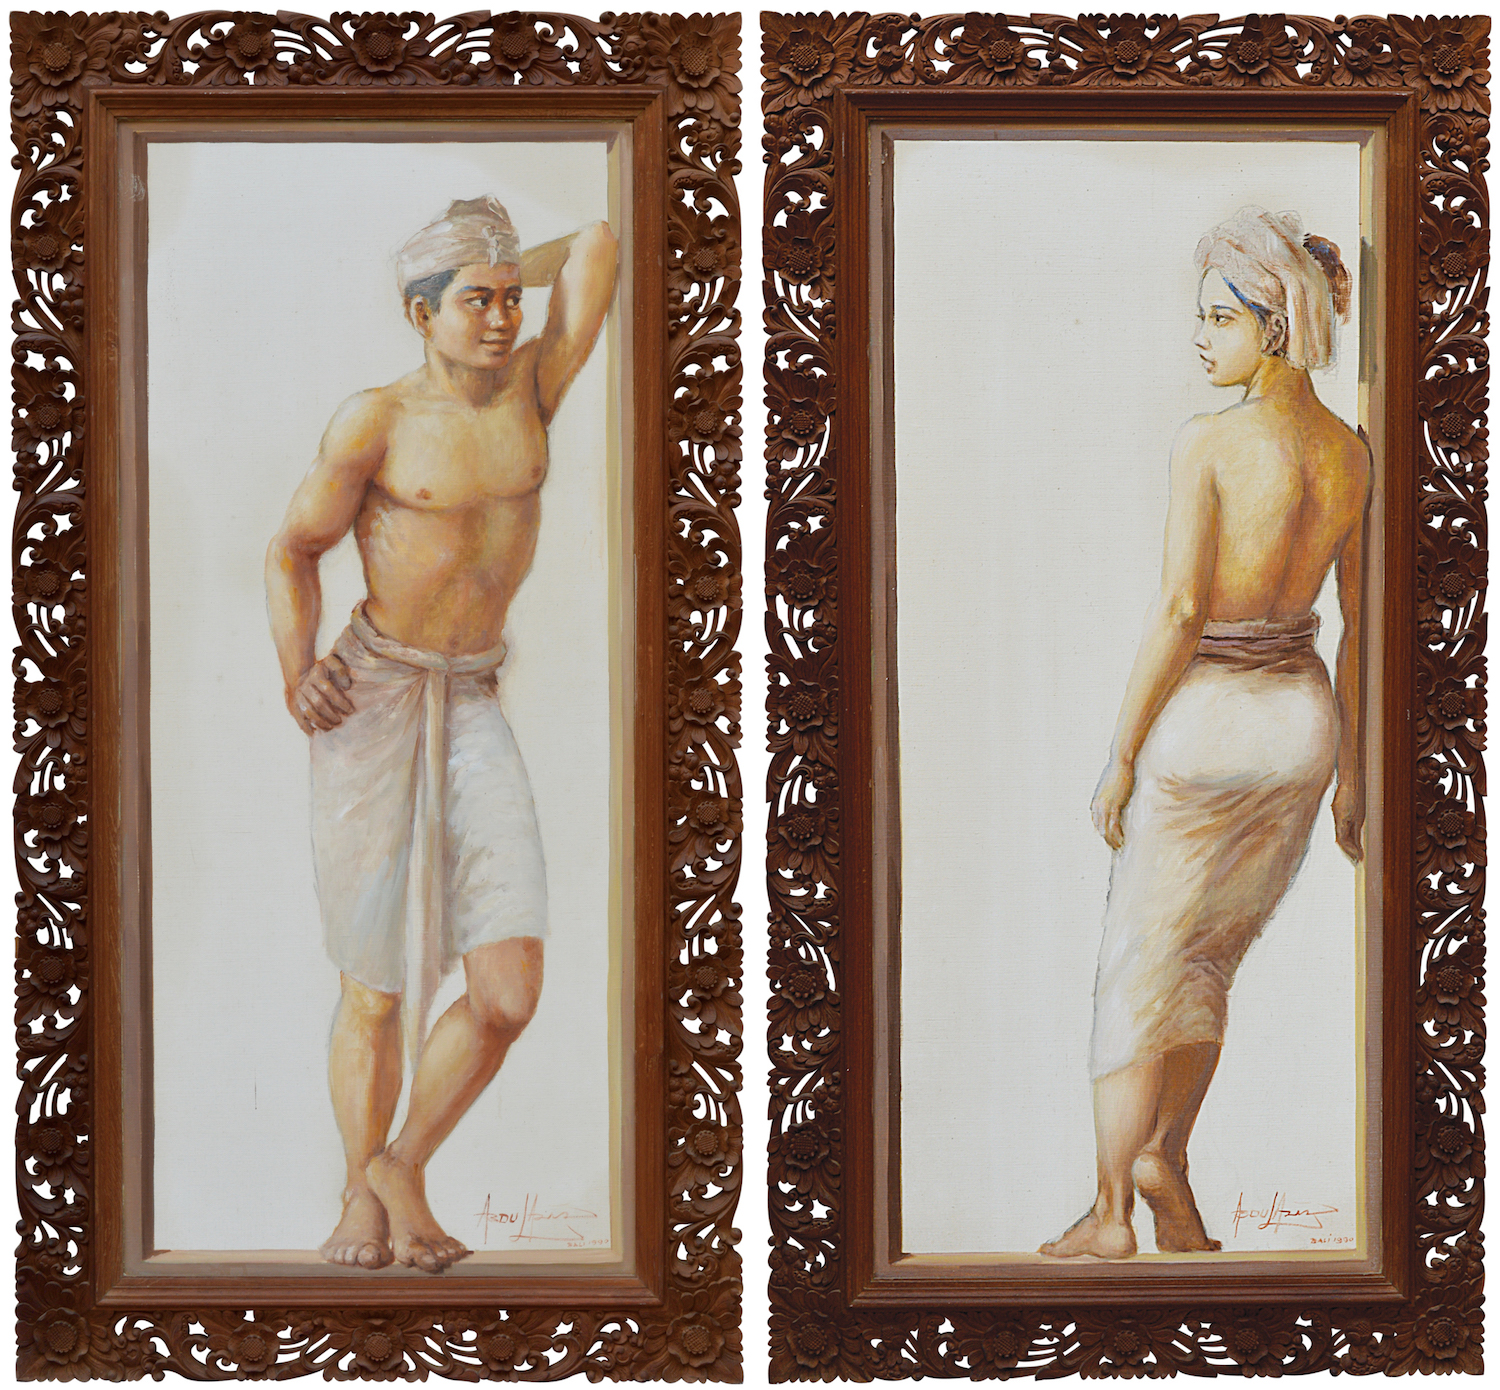 Abdul Aziz, 'Magnetic Attraction', oil on canvas, 143 x 65cm, 1990. Image courtesy of 33 Auction, Indonesia.